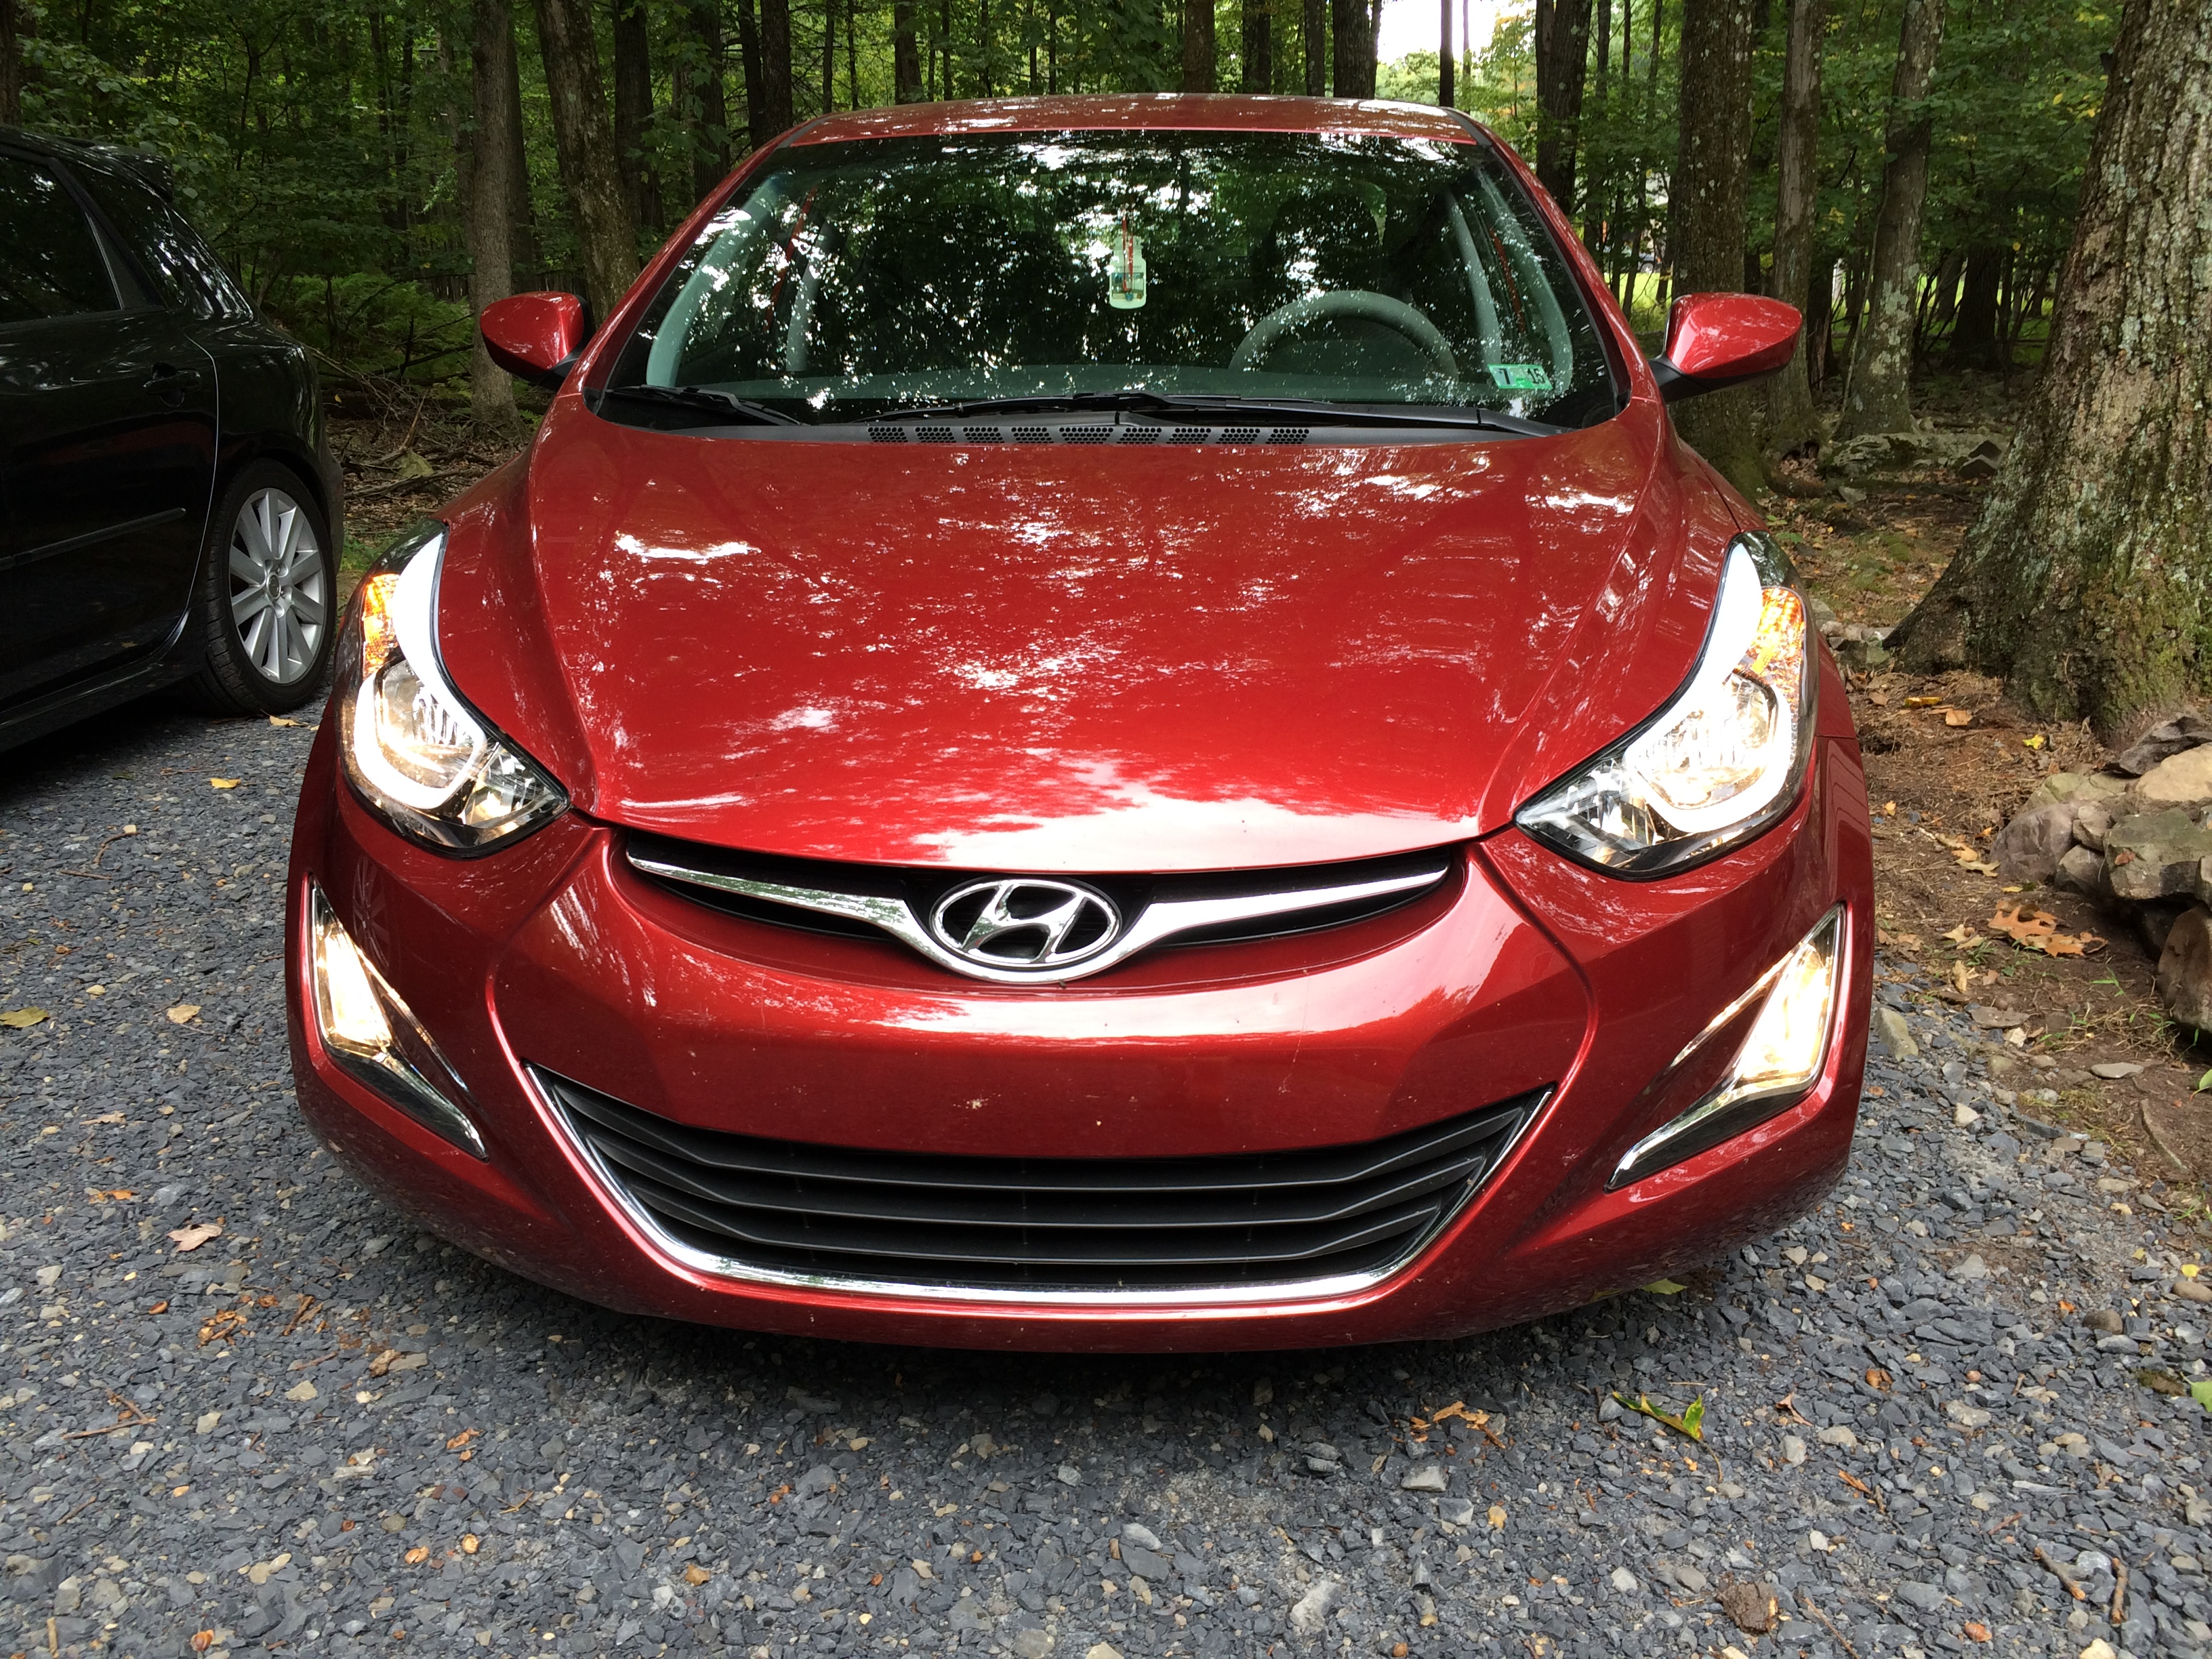 Blossom Installations Hyundai Factory Fog Light Install With Wiring Harness A Set Of Lights Finishes The Aggressive Look To Front This Elantra Gt Custom Designed Allows Automatic